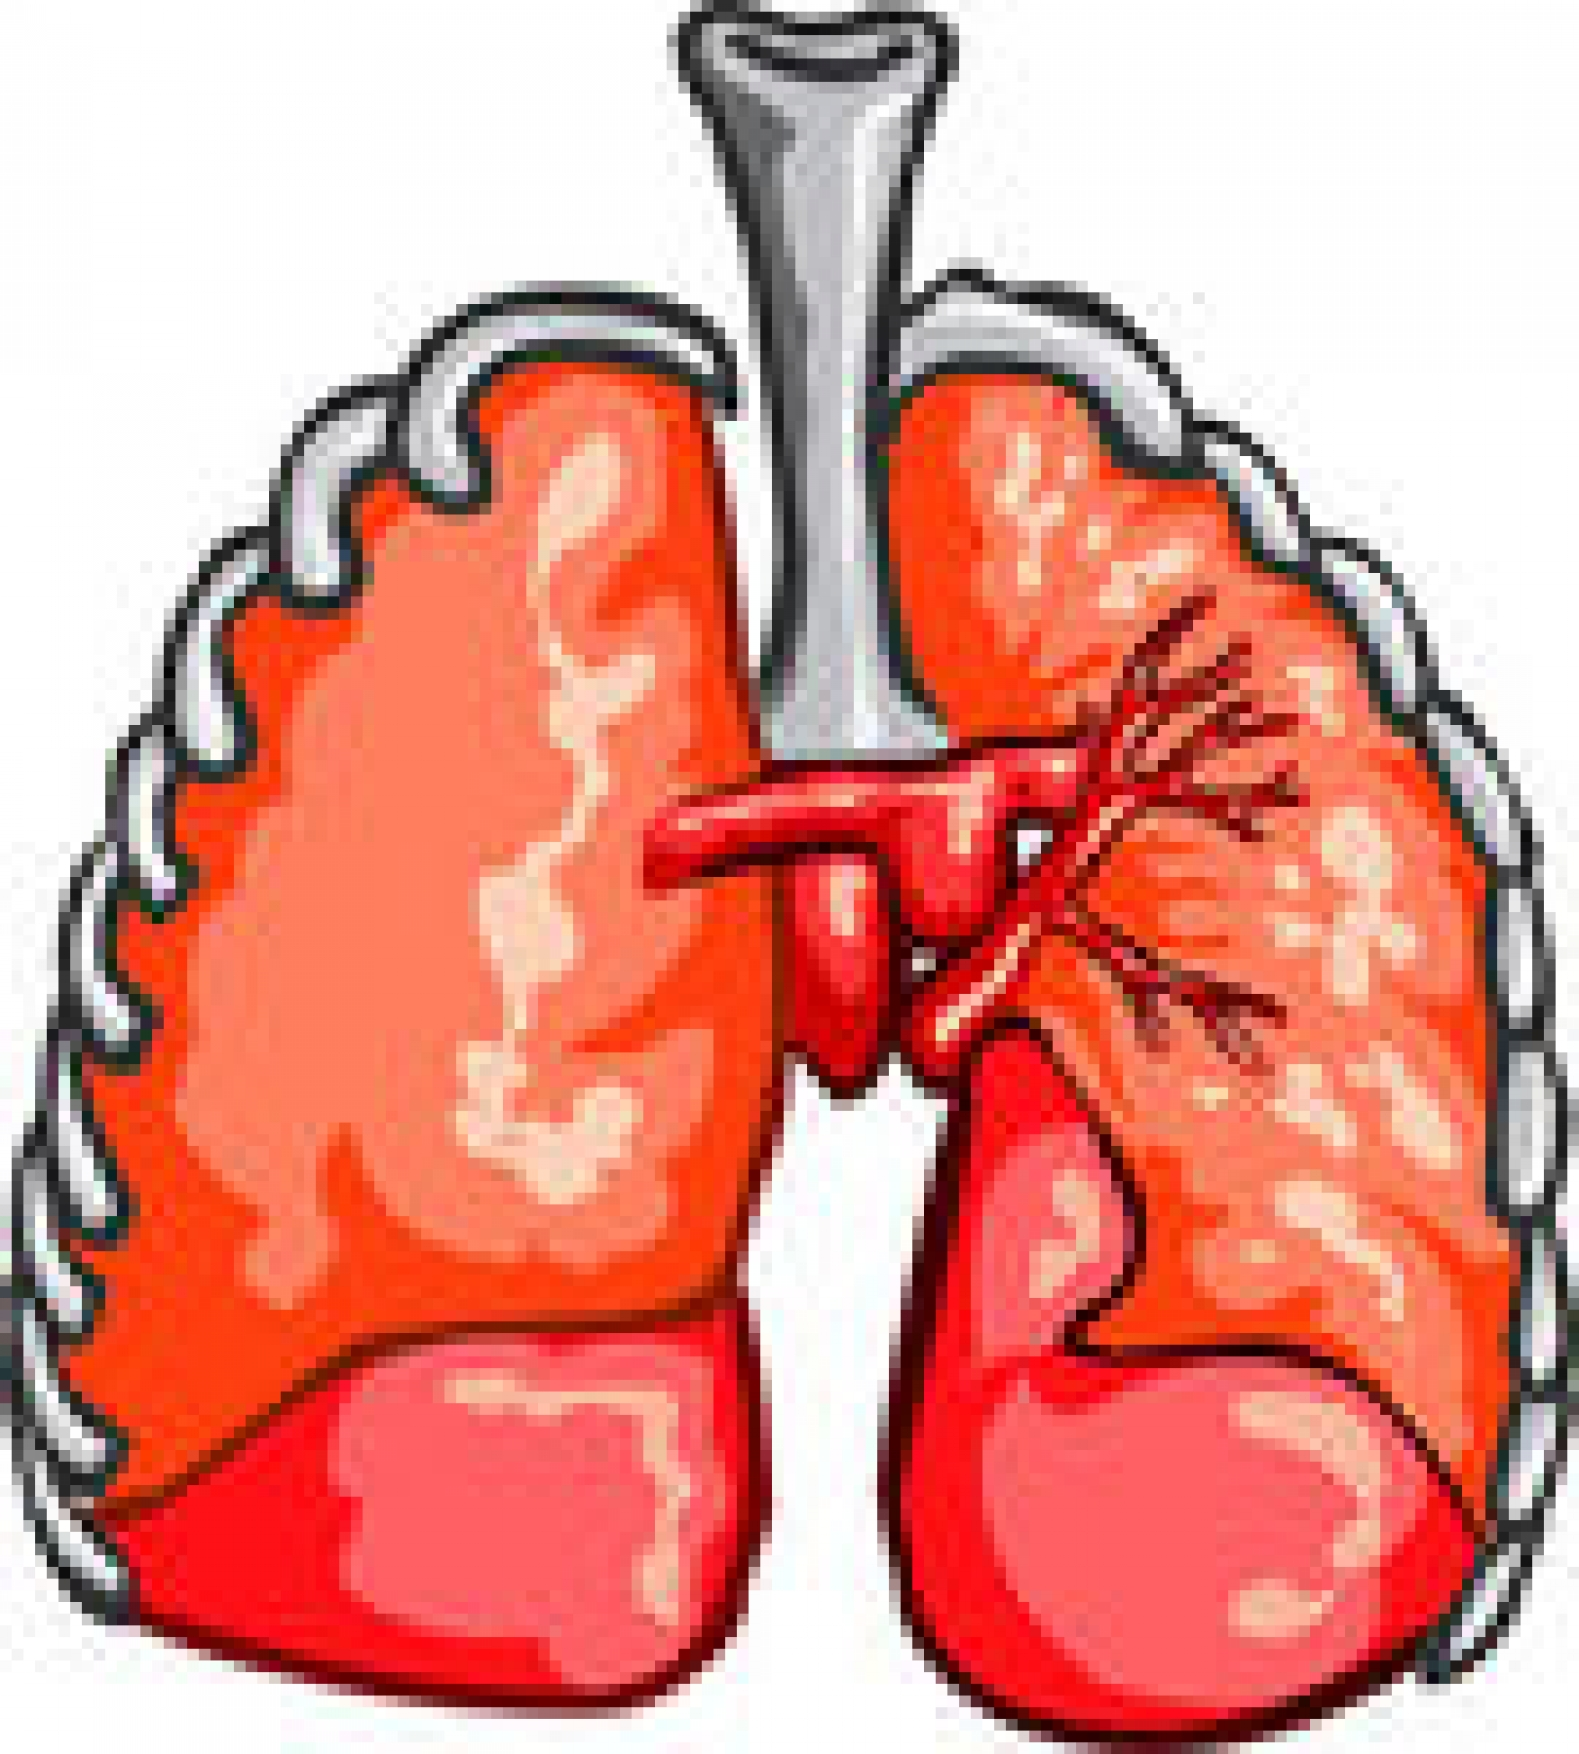 Healthy lungs clipart jpg black and white library Lung Clipart | Free download best Lung Clipart on ClipArtMag.com jpg black and white library